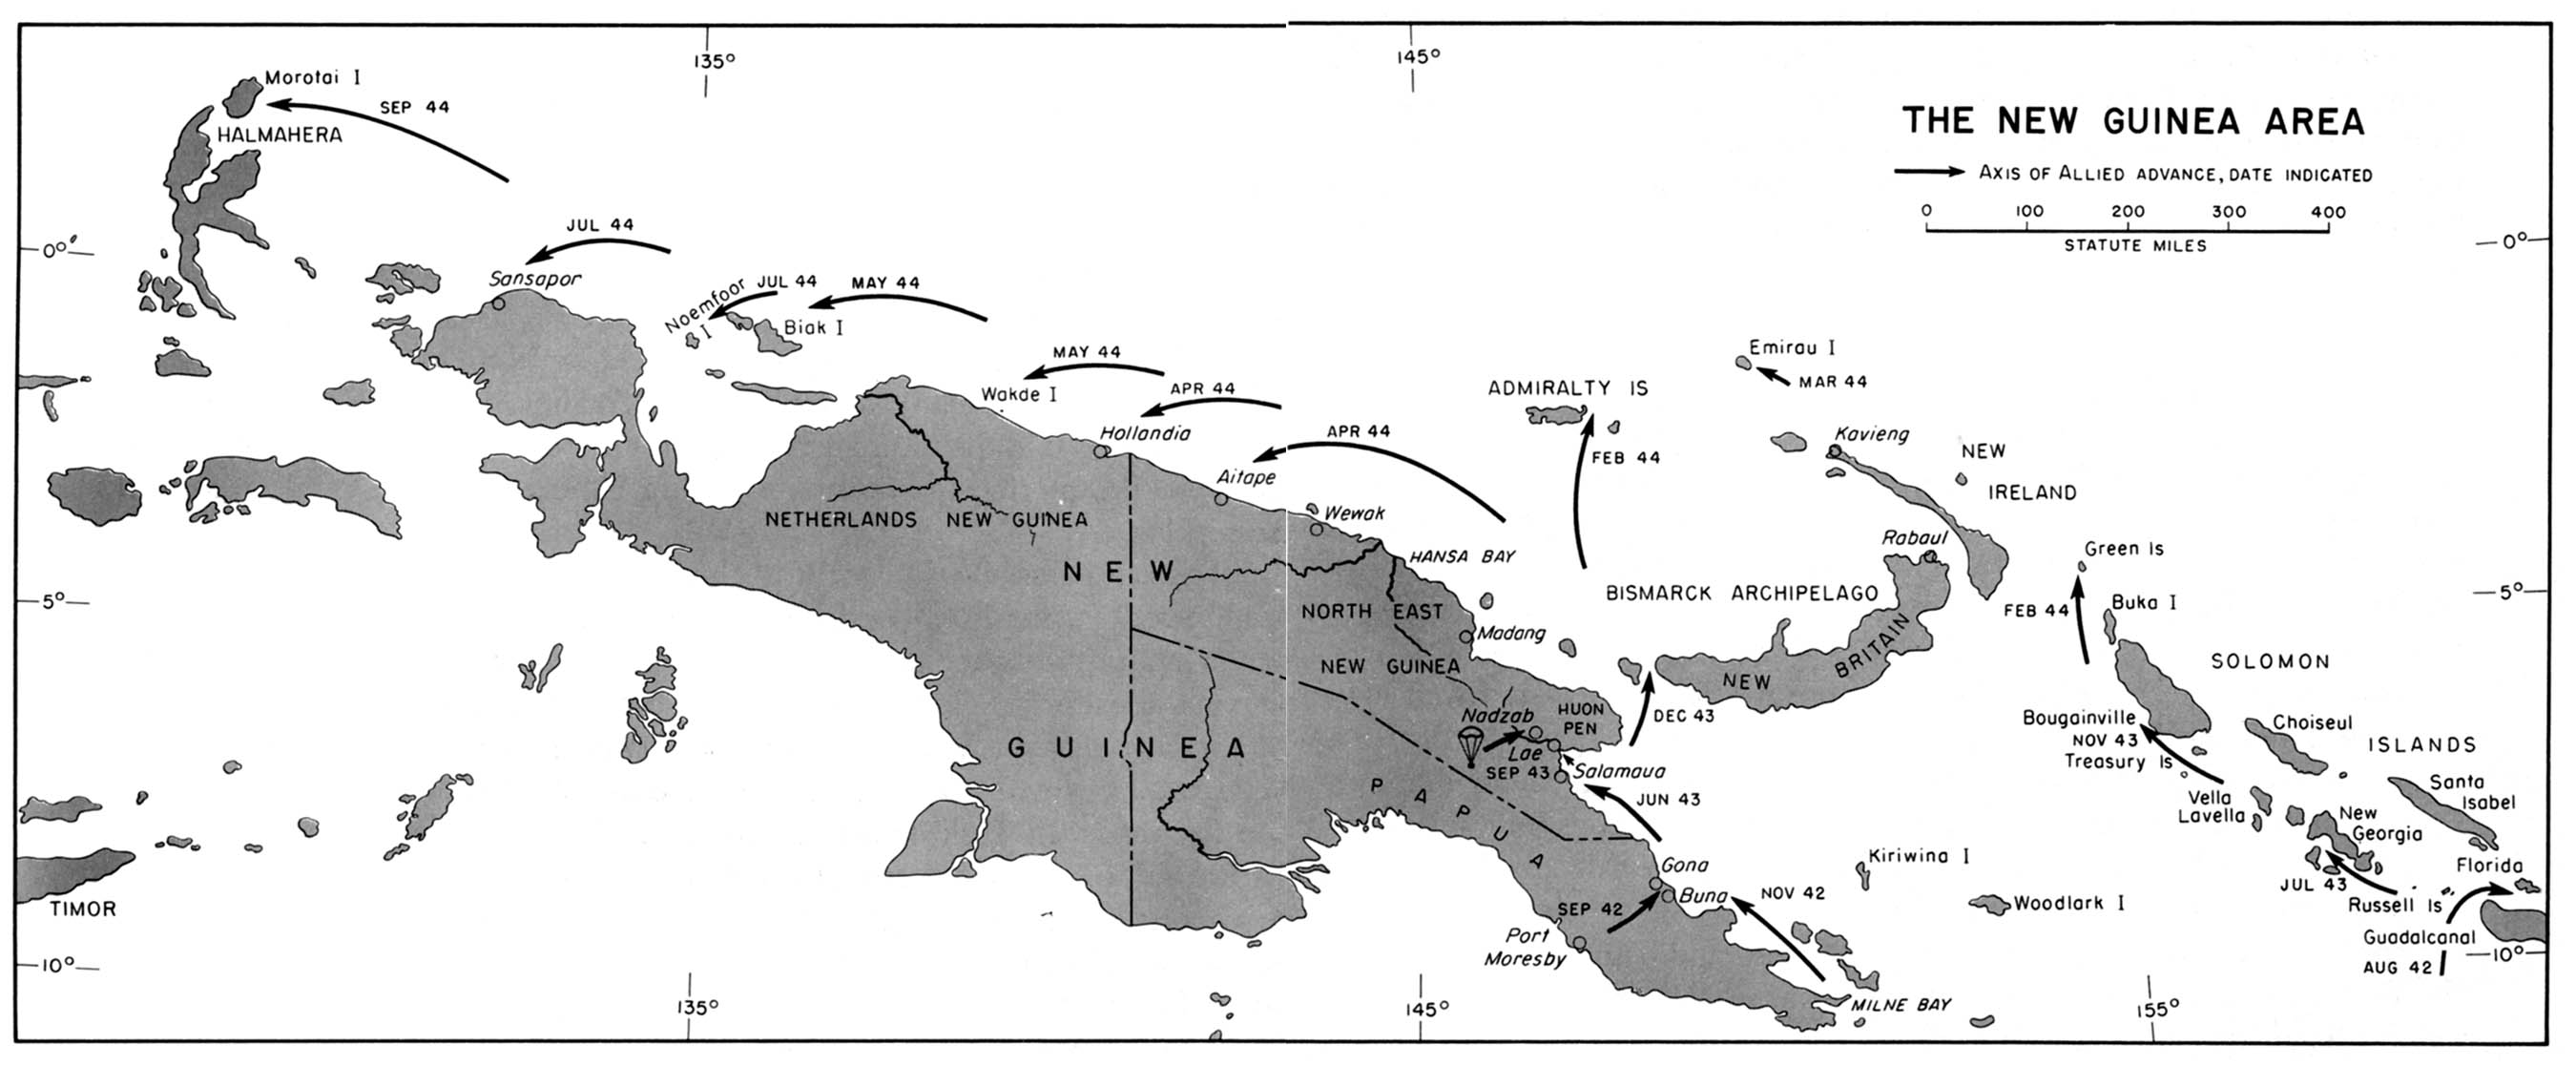 map 43 the new guinea area